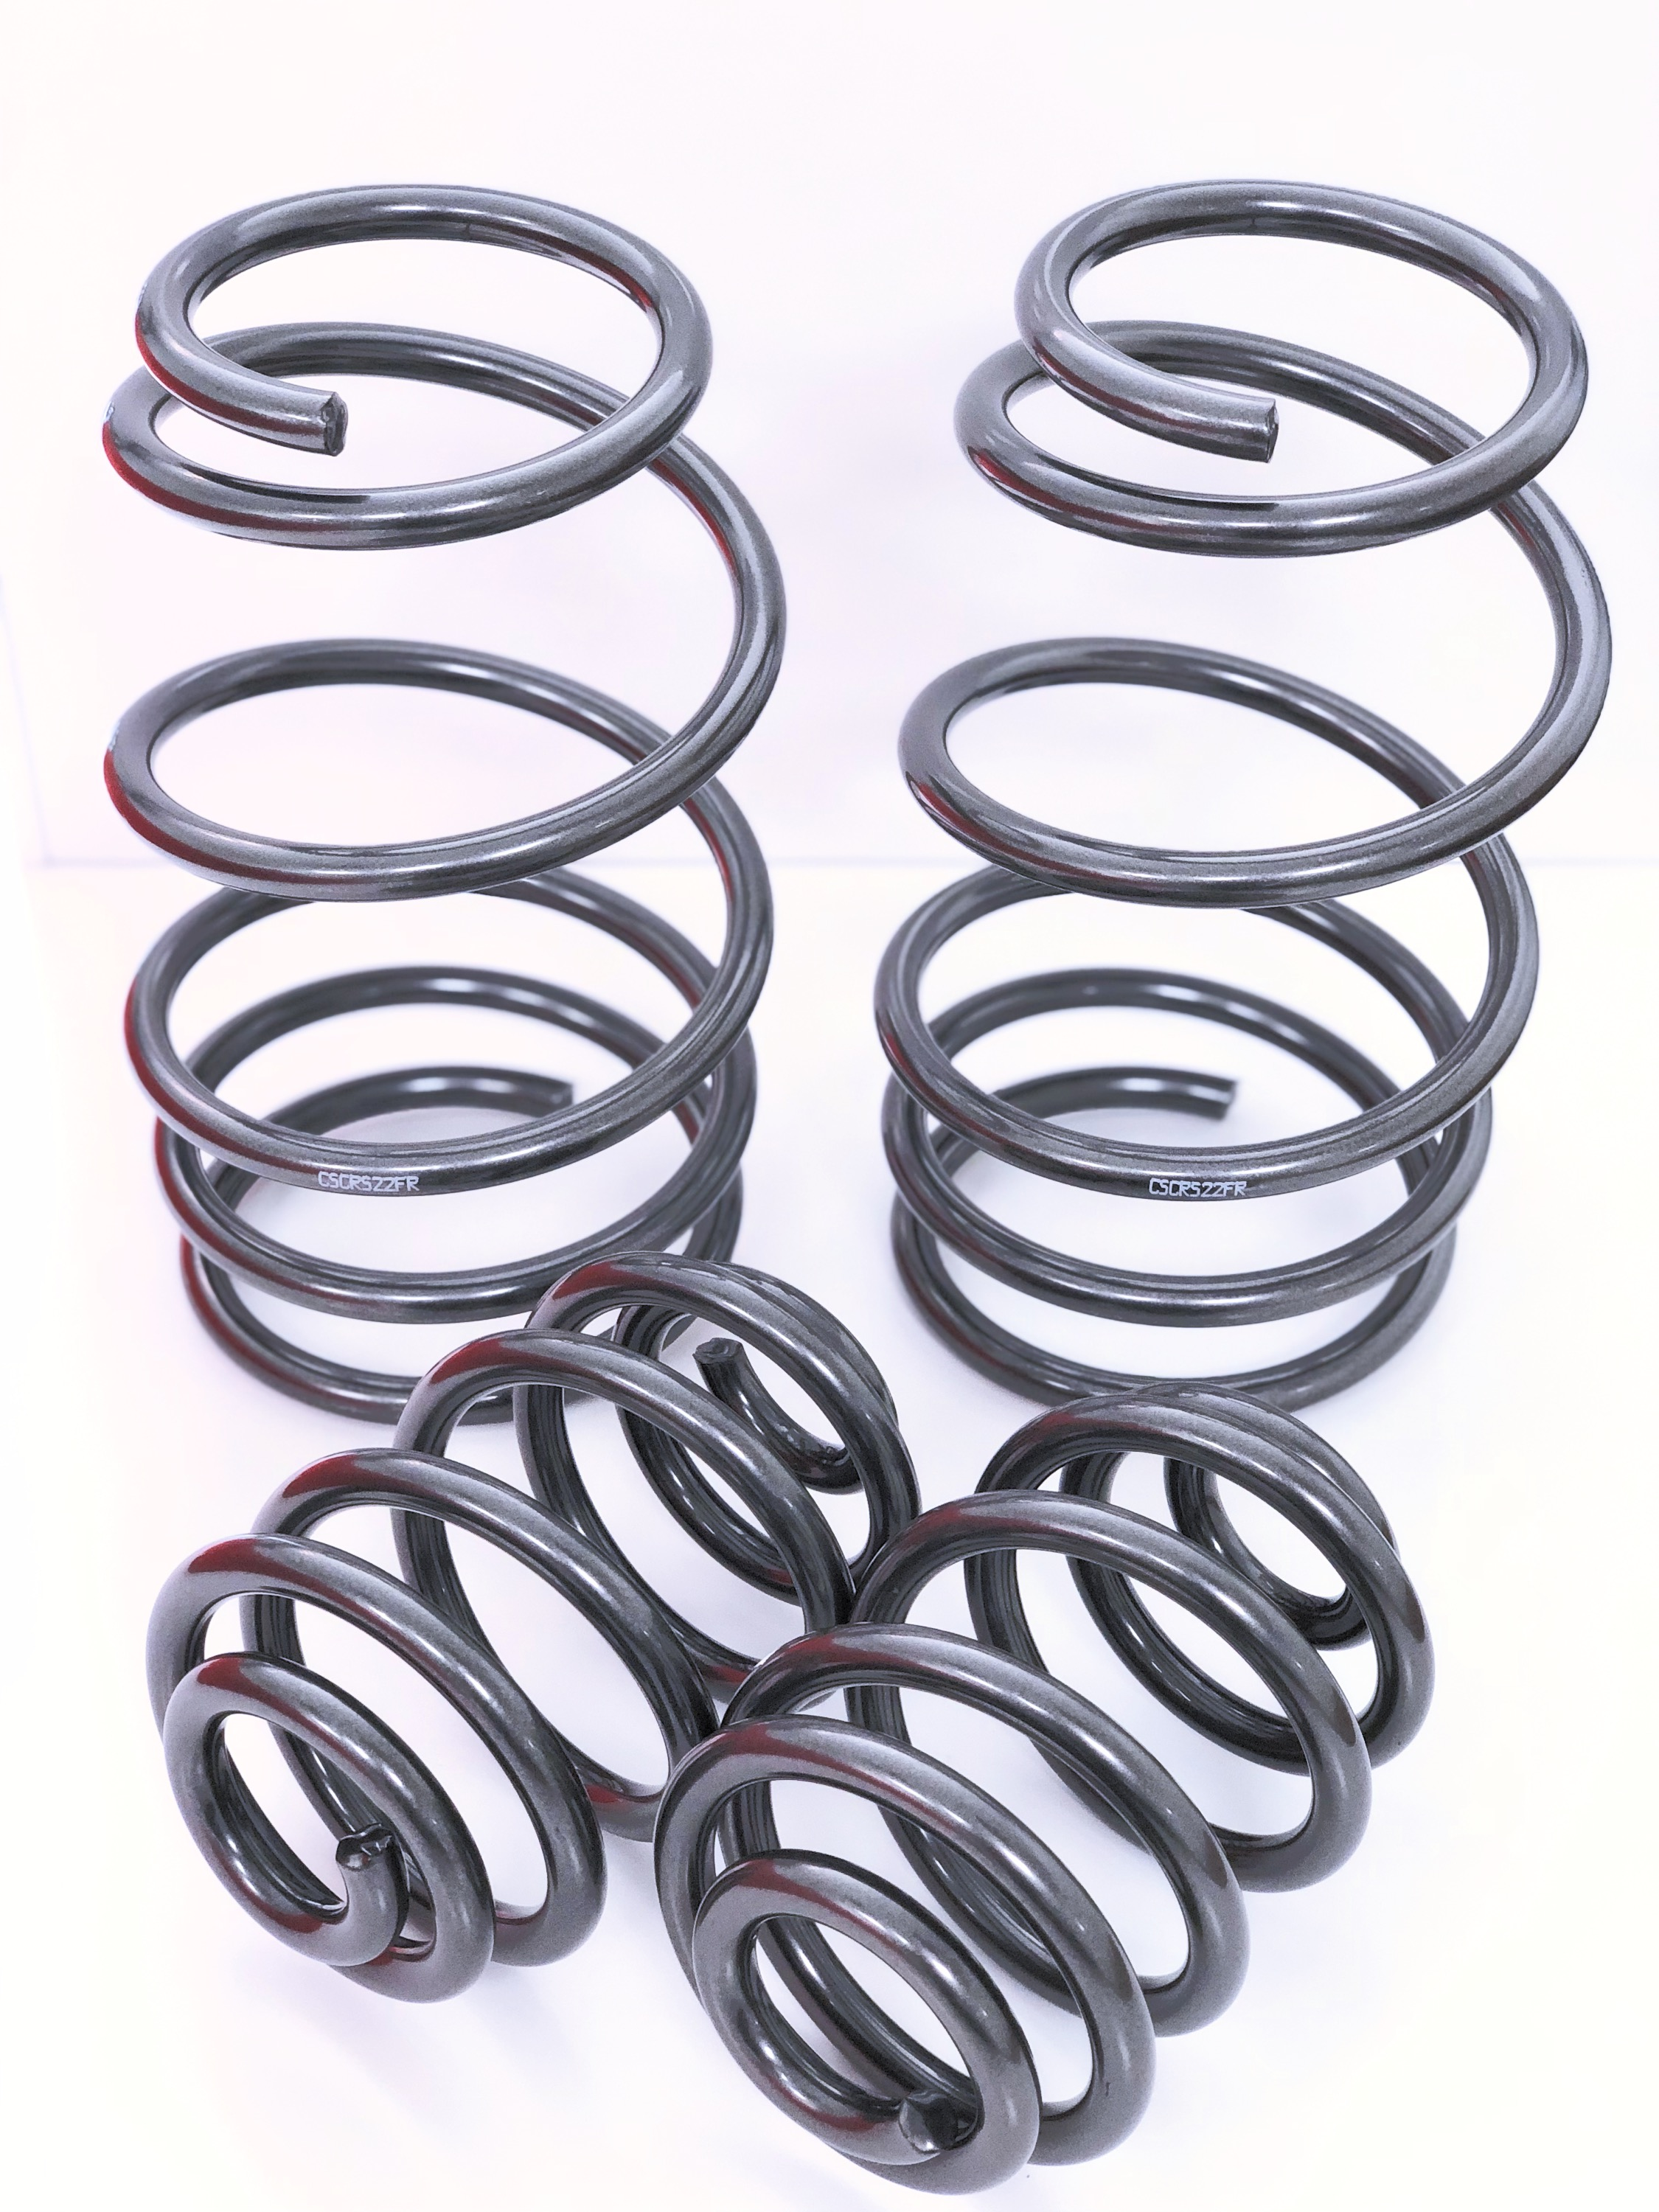 Renault Clio MK2 RS 172/182 Cooksport Lowering Springs